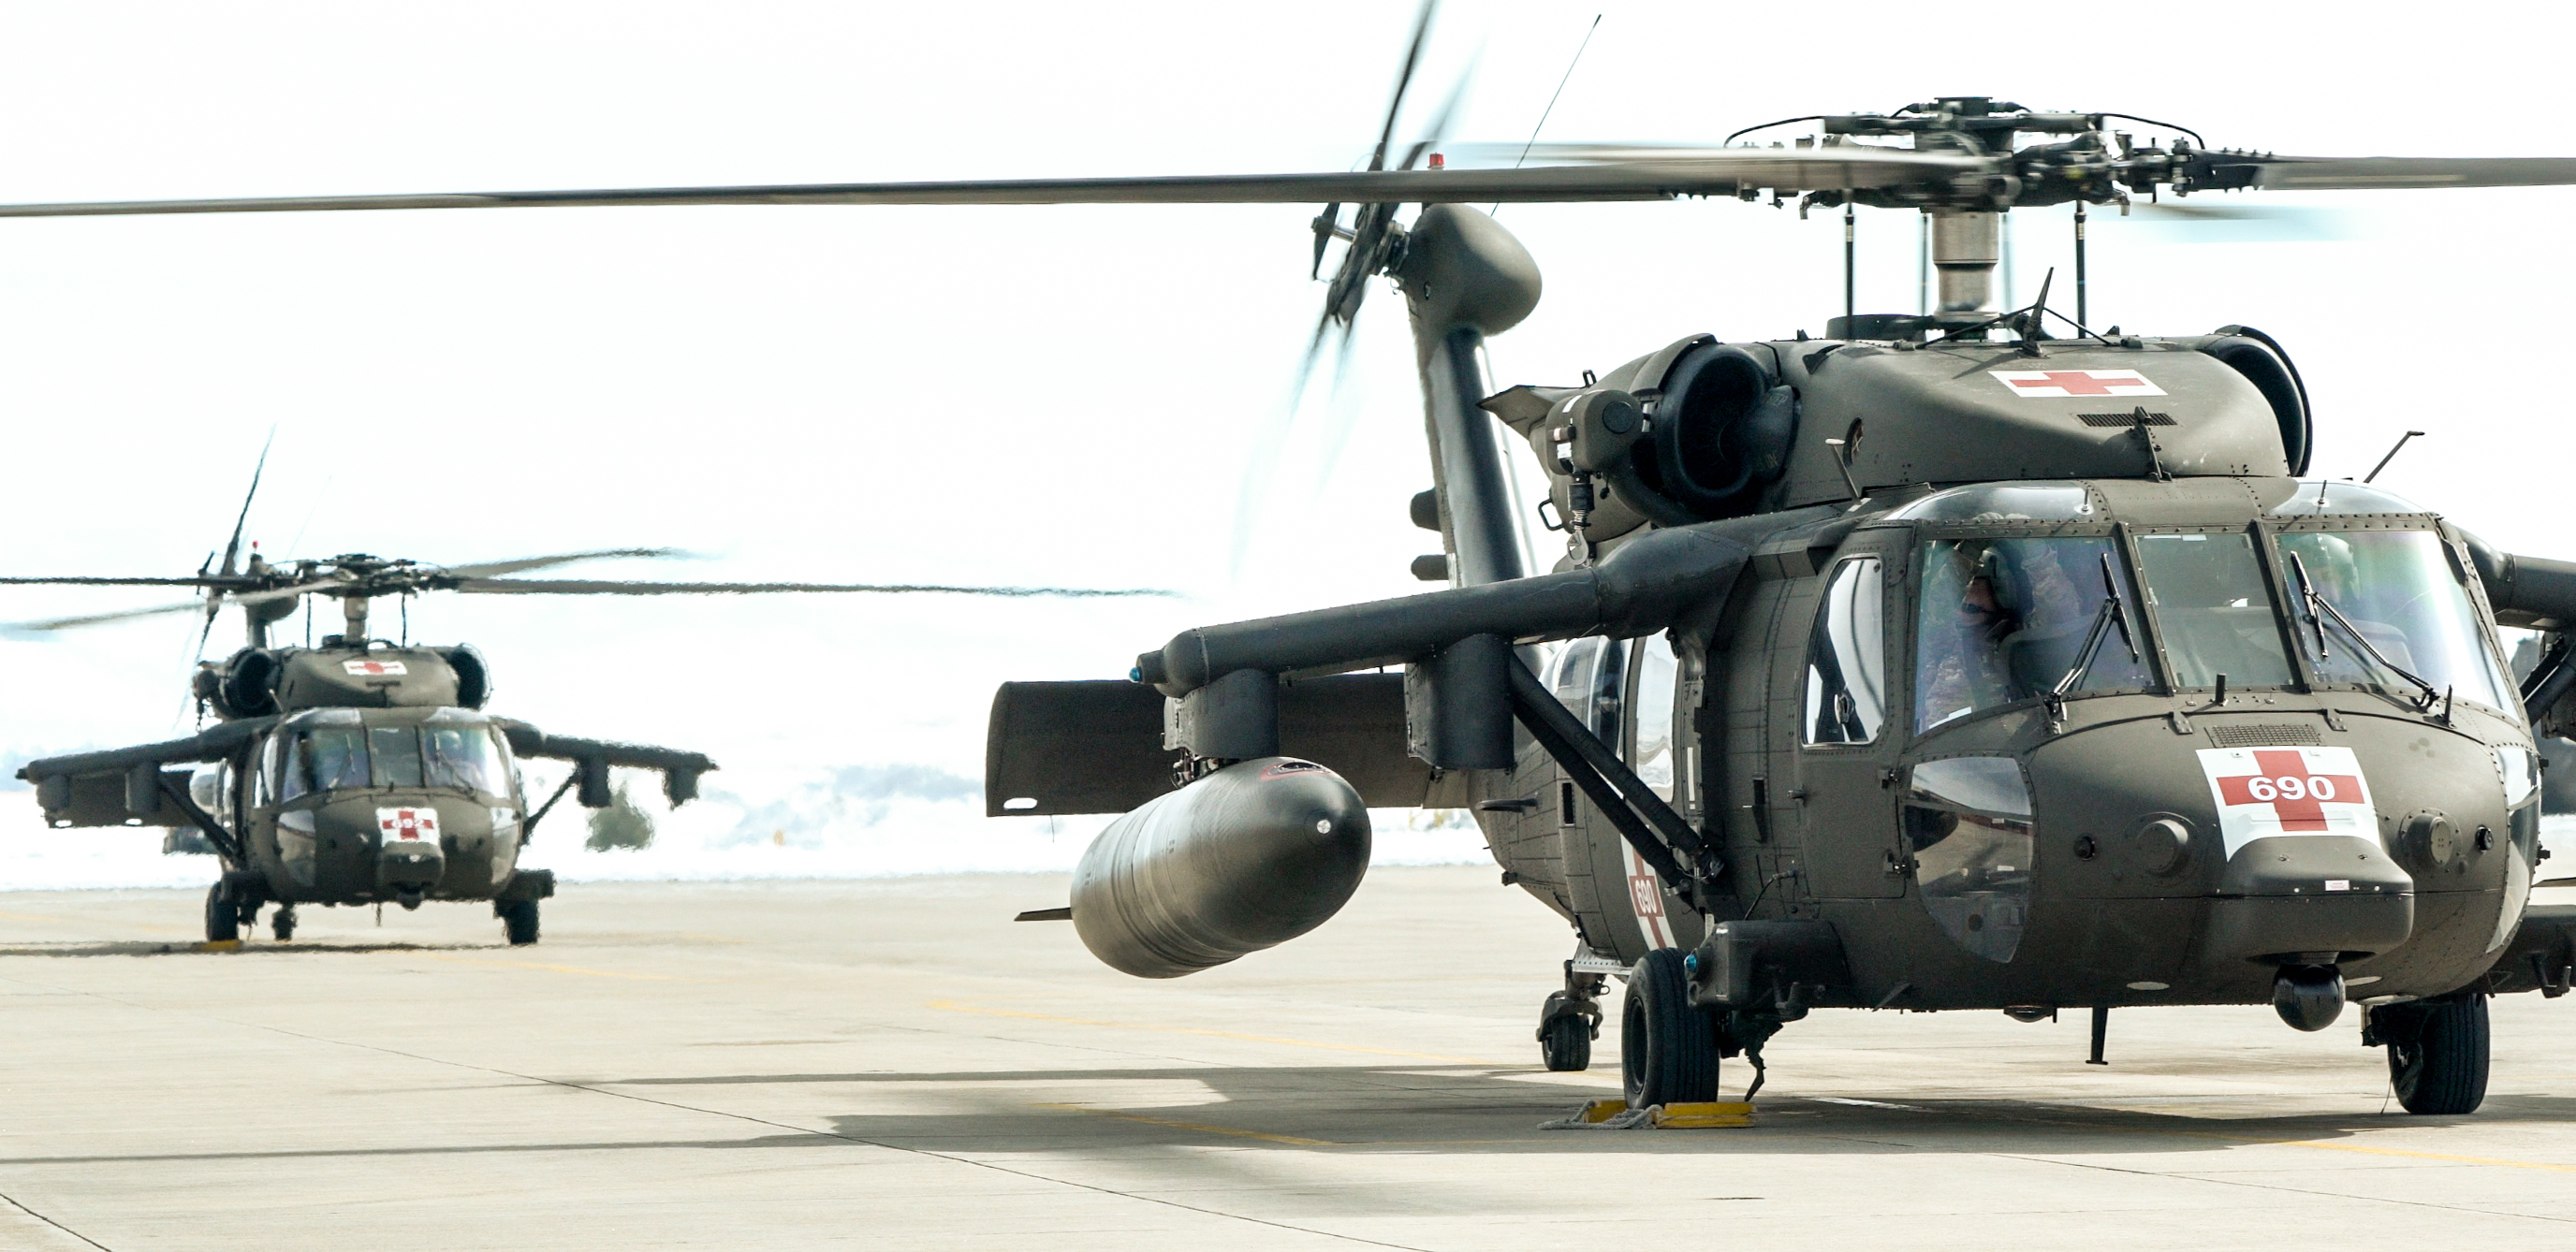 Two Blackhawk helicopters on the tarmac for simulation training